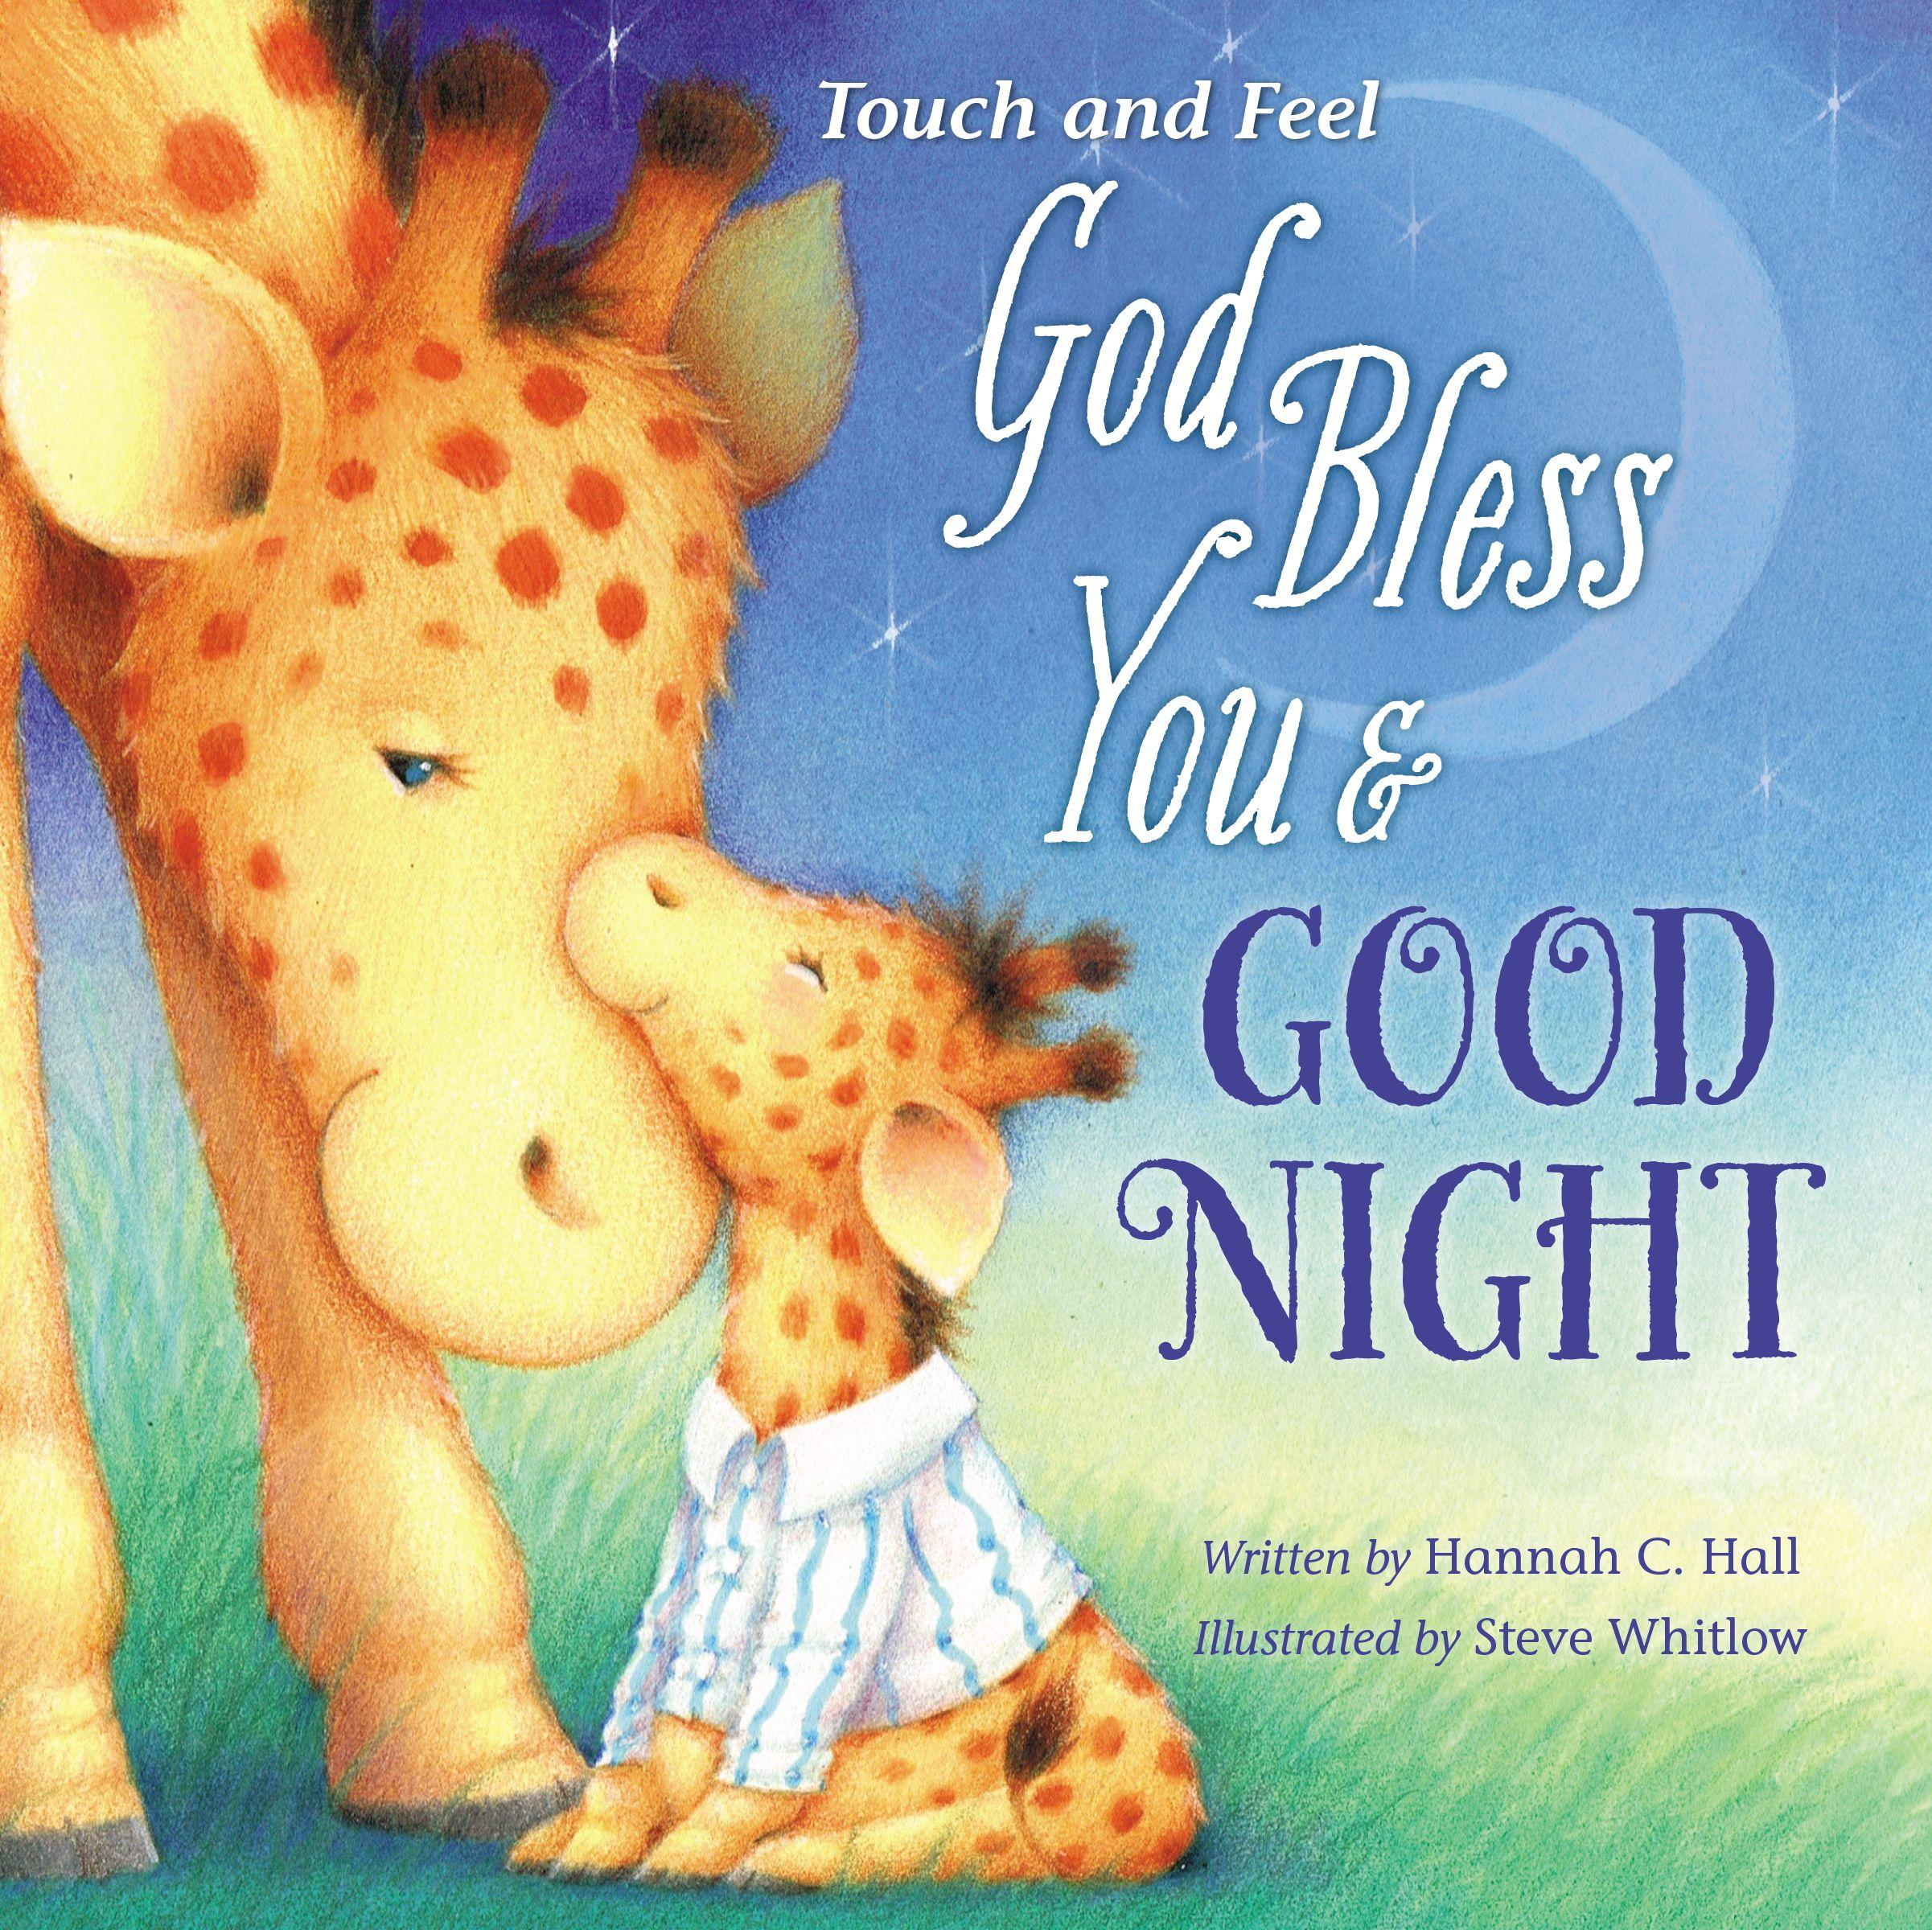 God Bless You and Good Night Touch and Feel (Board Book)